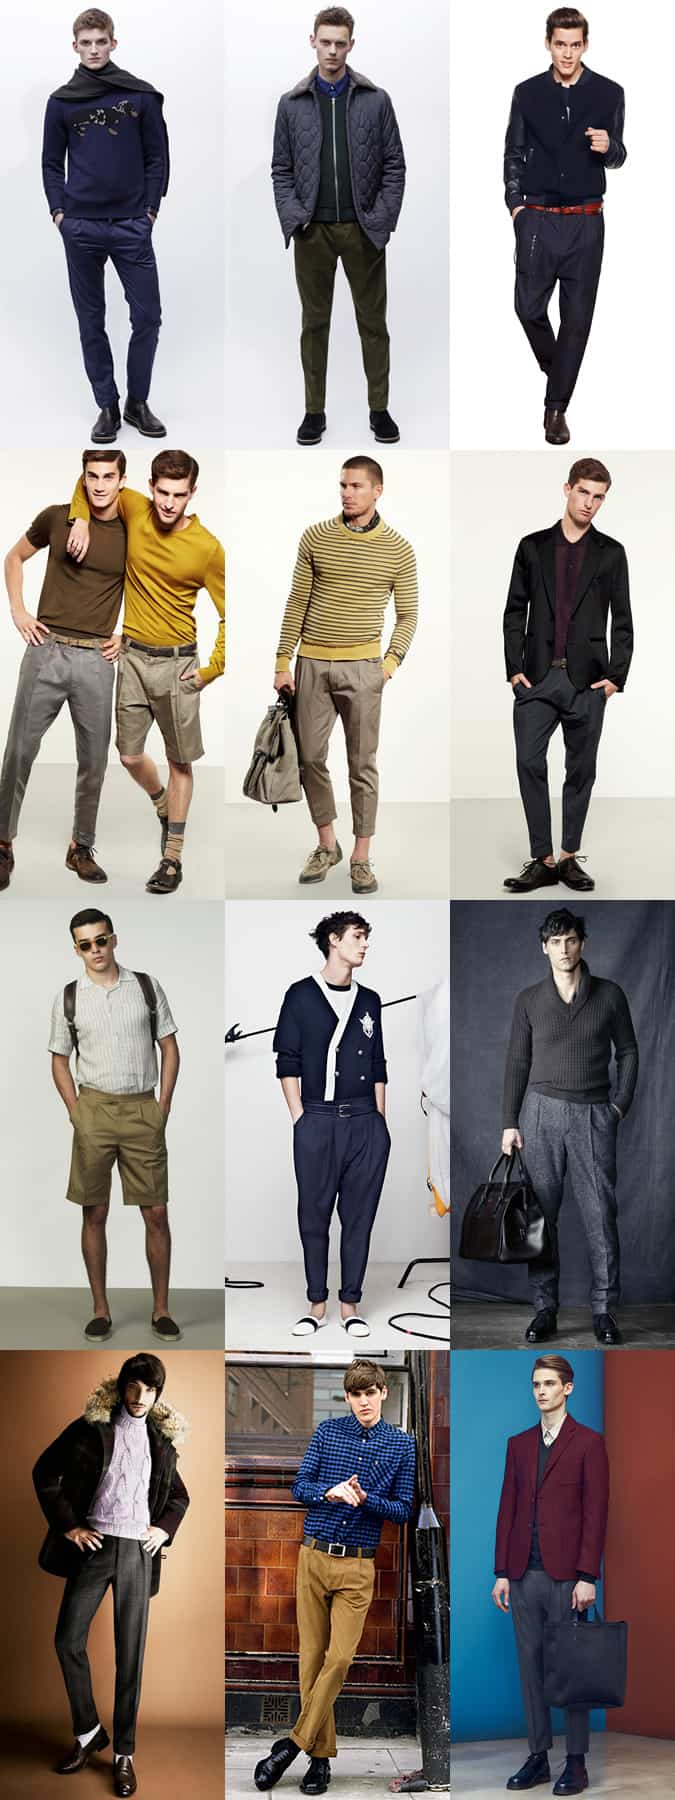 Men's Modern Pleated Trousers Lookbook